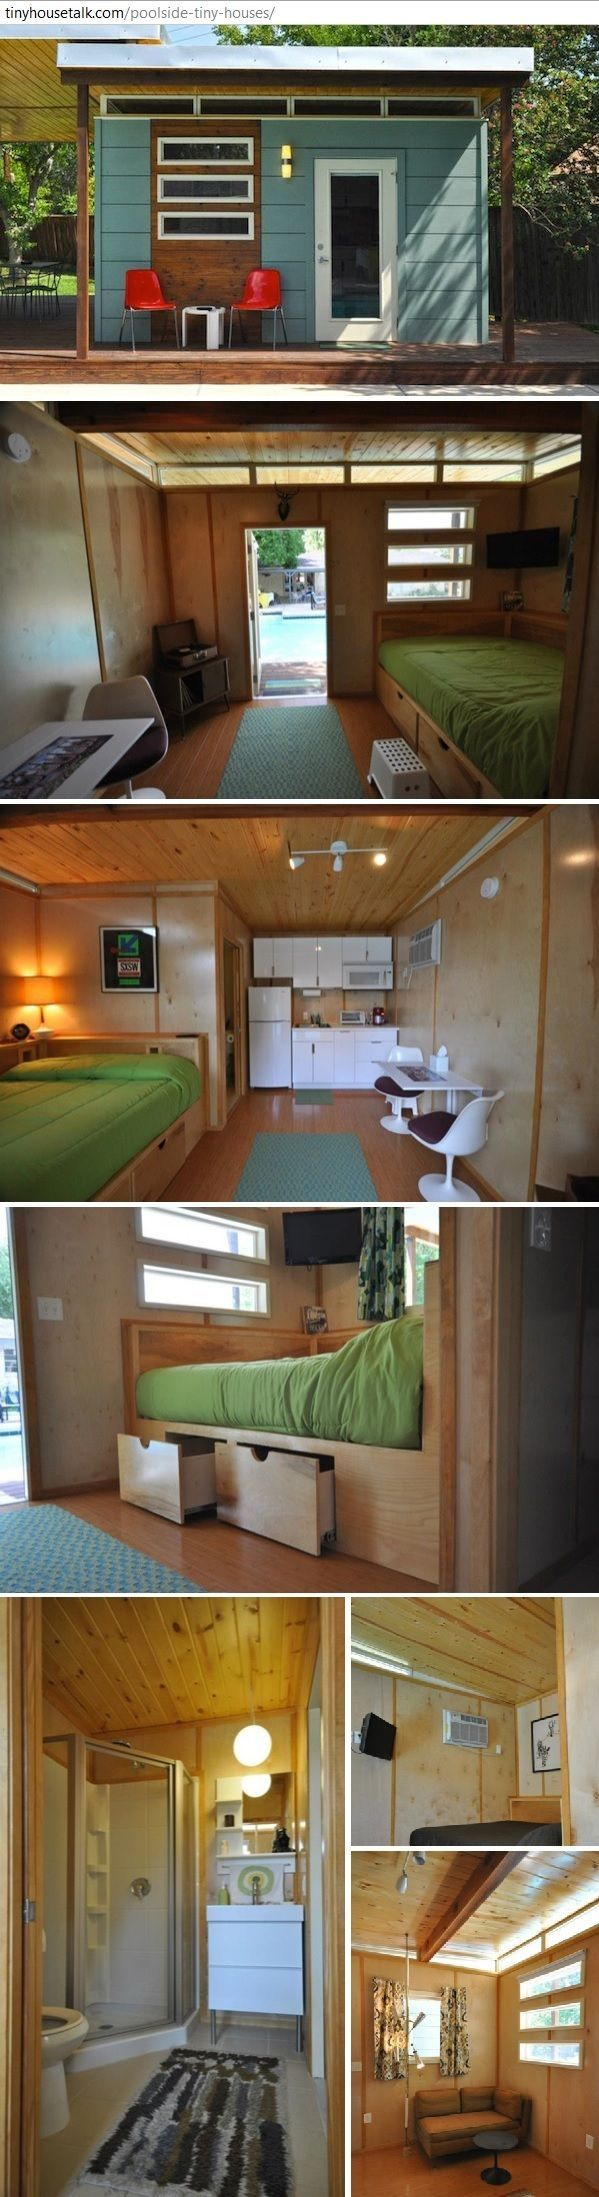 19 best tiny houses and stuff images on pinterest small houses